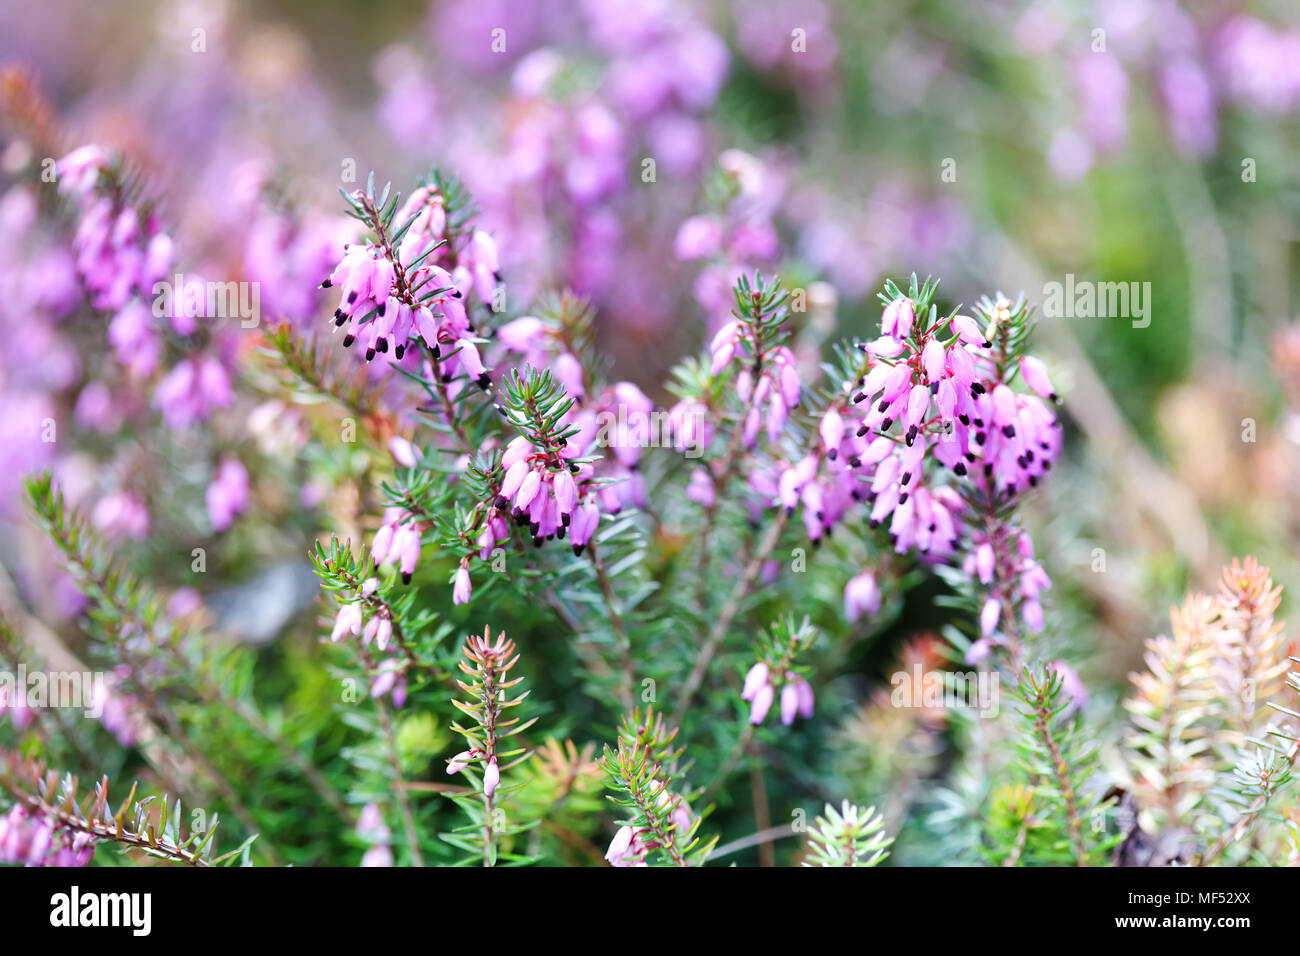 Flowering Erica tetralix small pink lilac plants, shallow depth of field, selective focus photography - Stock Image